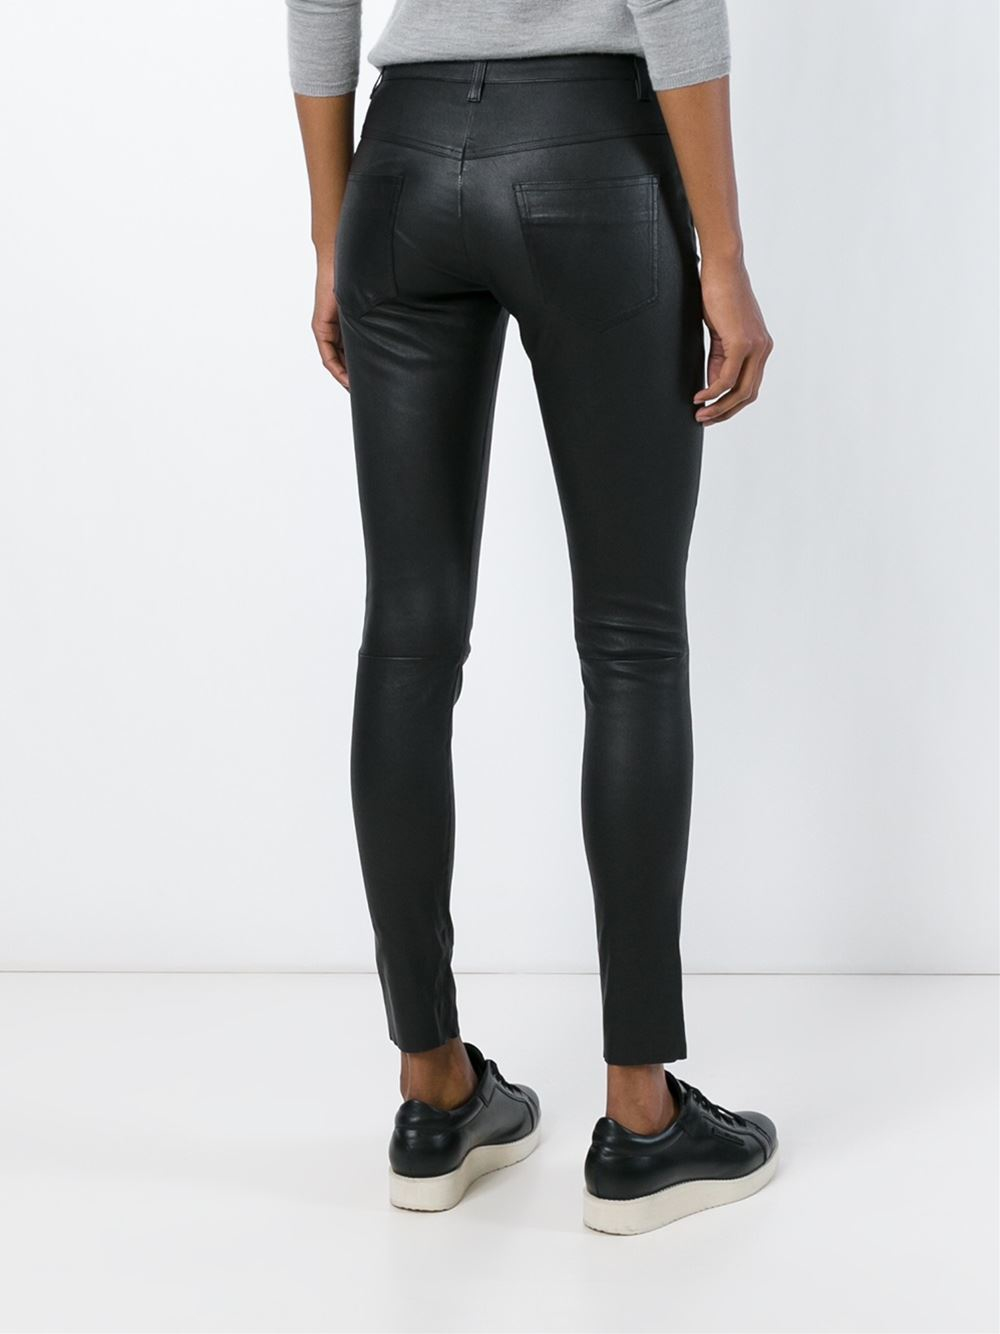 Leather In Lyst Skinny Trousers Muubaa Black lK1TcJuF3